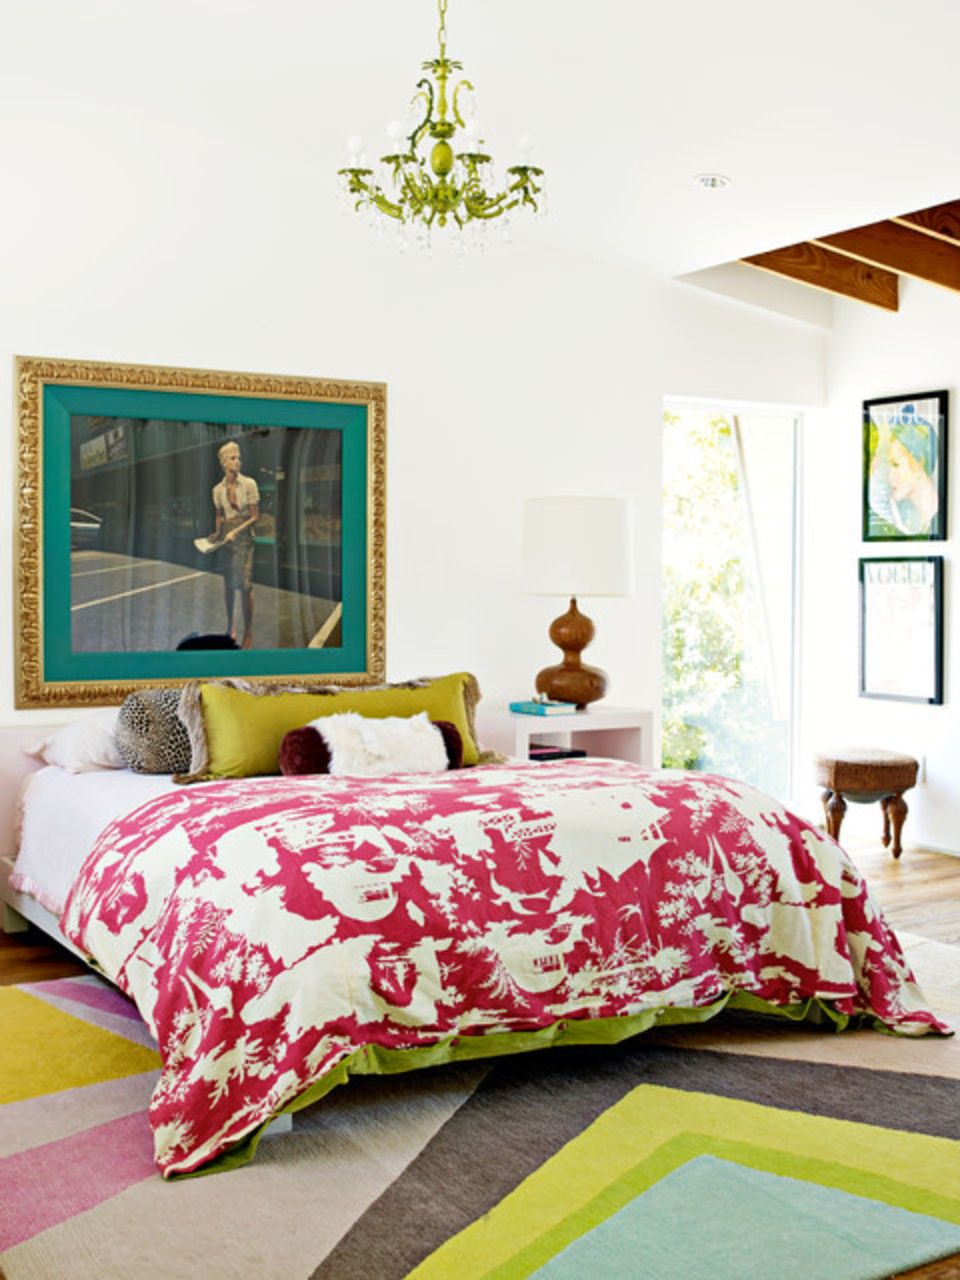 Make Way For Eclectic Home Decor Eclectic Bedroom Eclectic